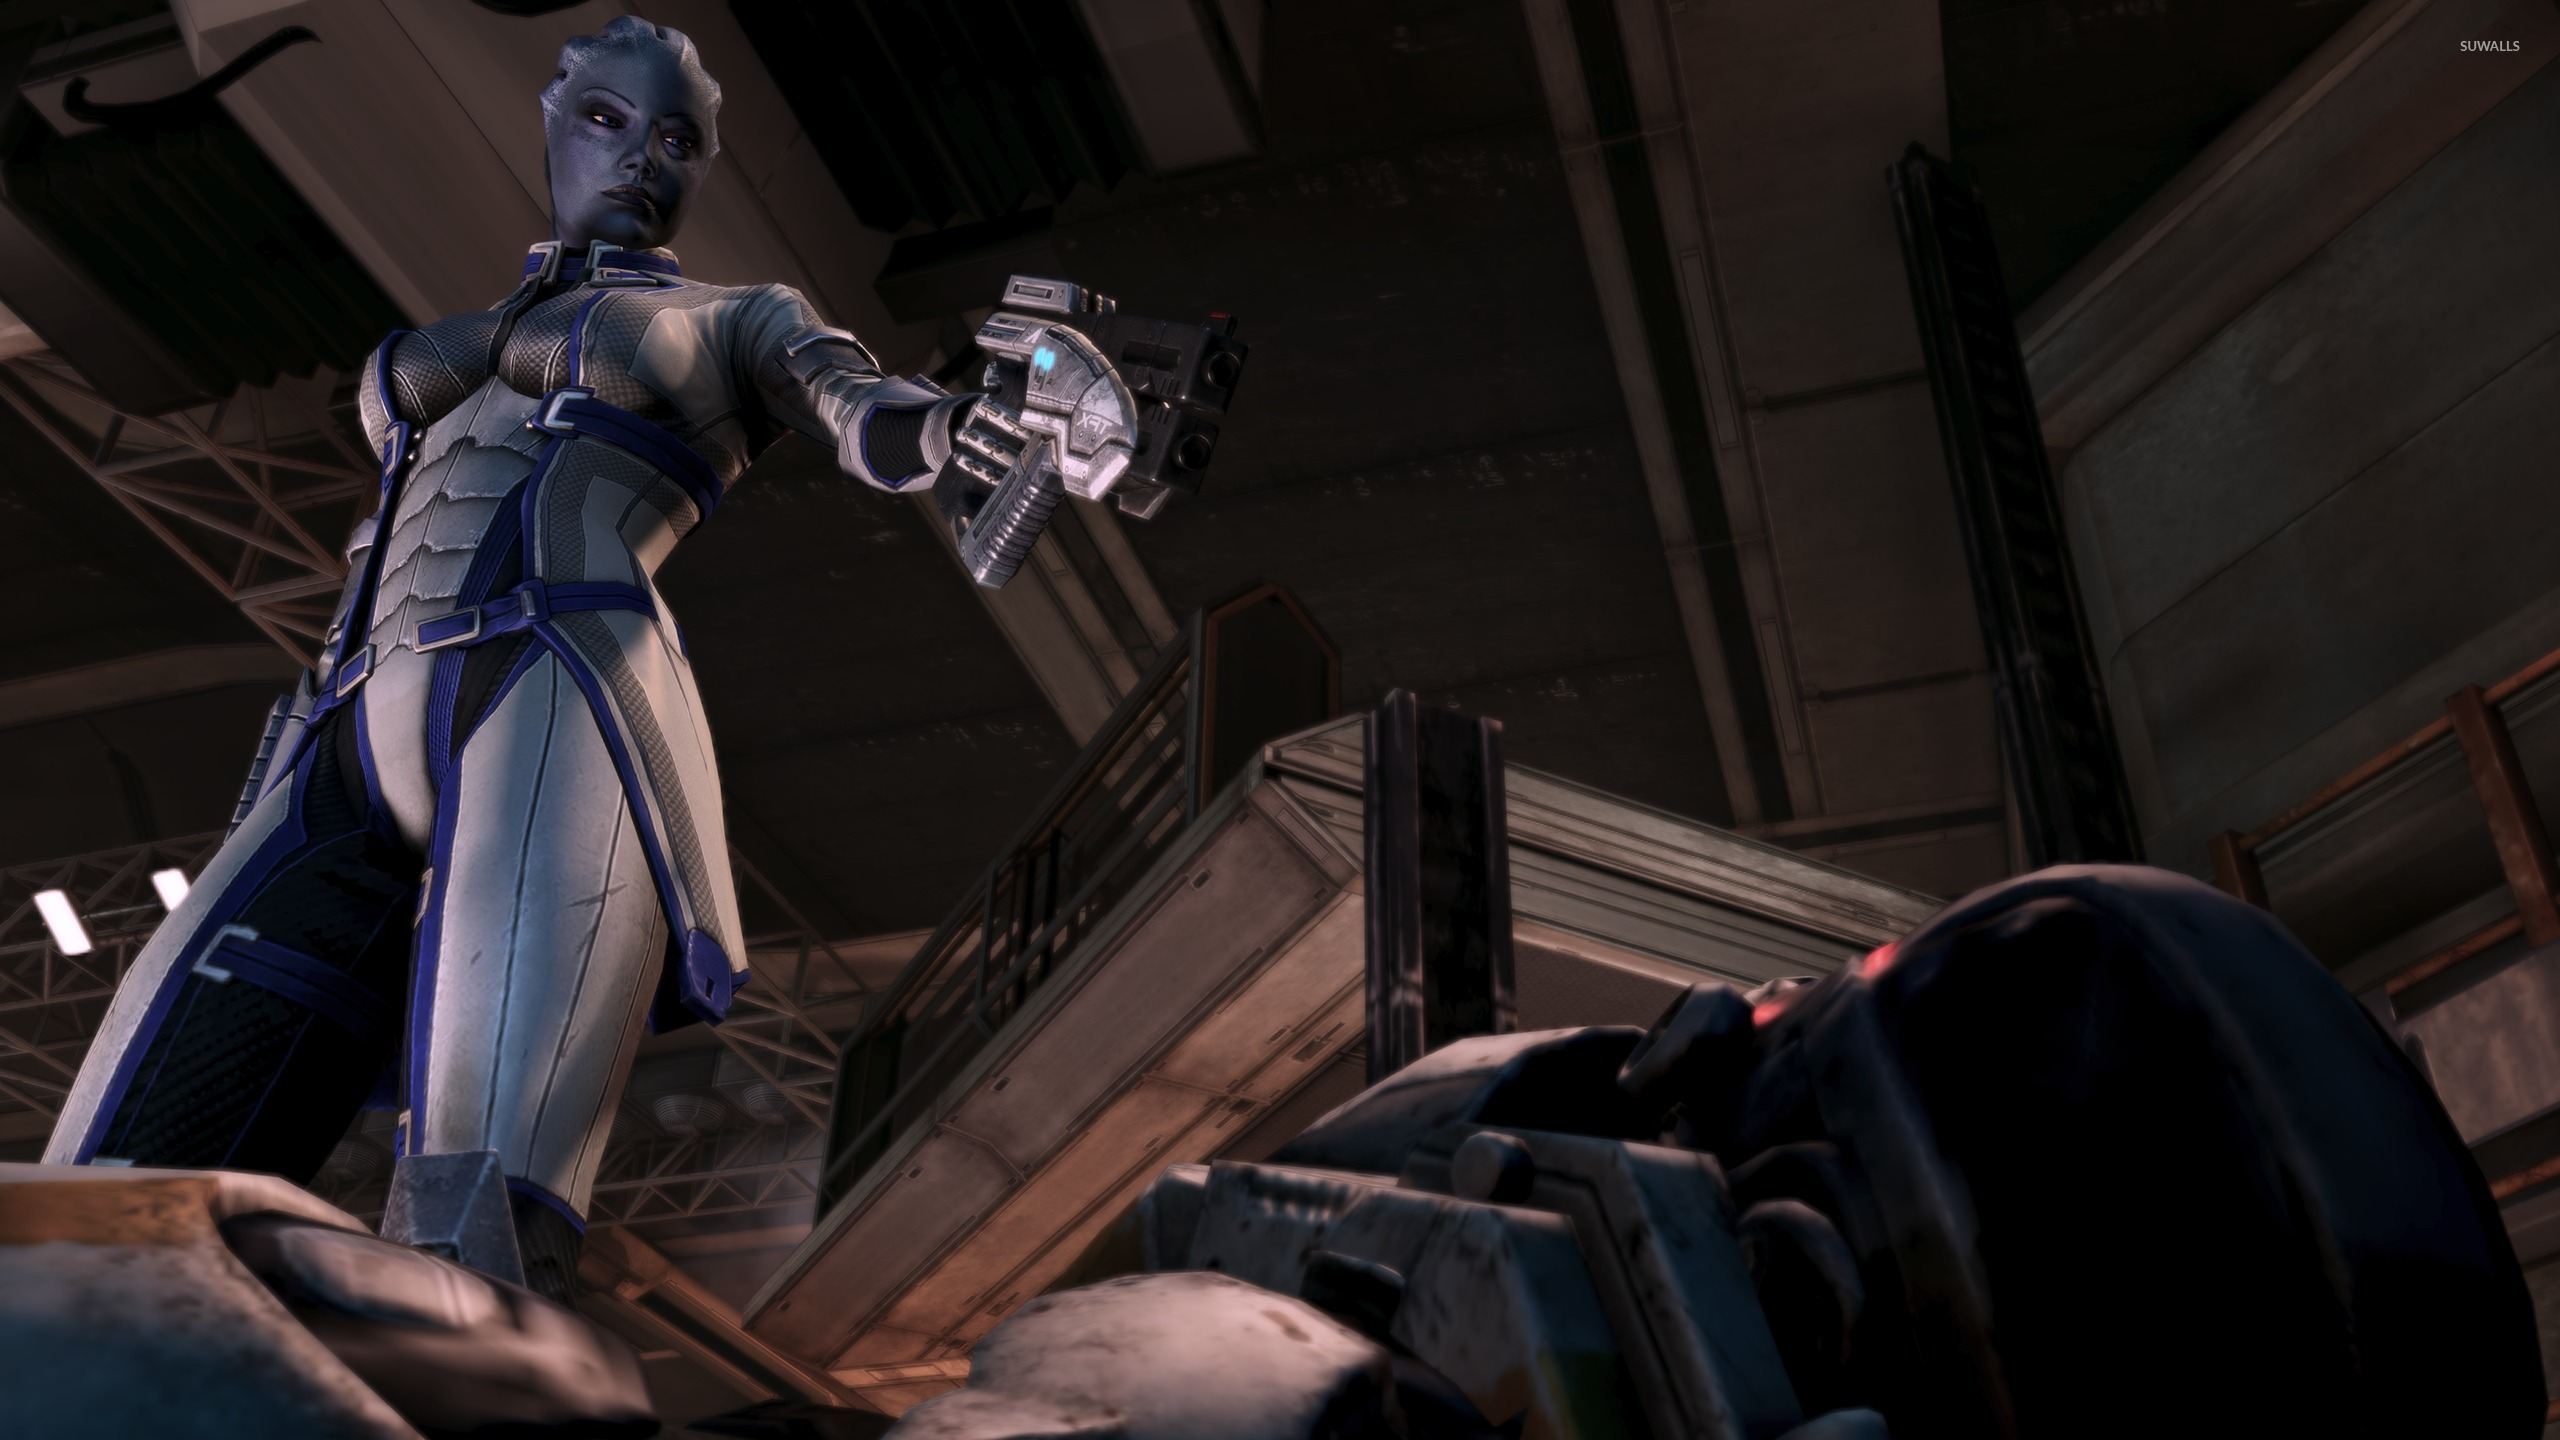 Liara Tsoni Mass Effect 2 Wallpaper Game Wallpapers